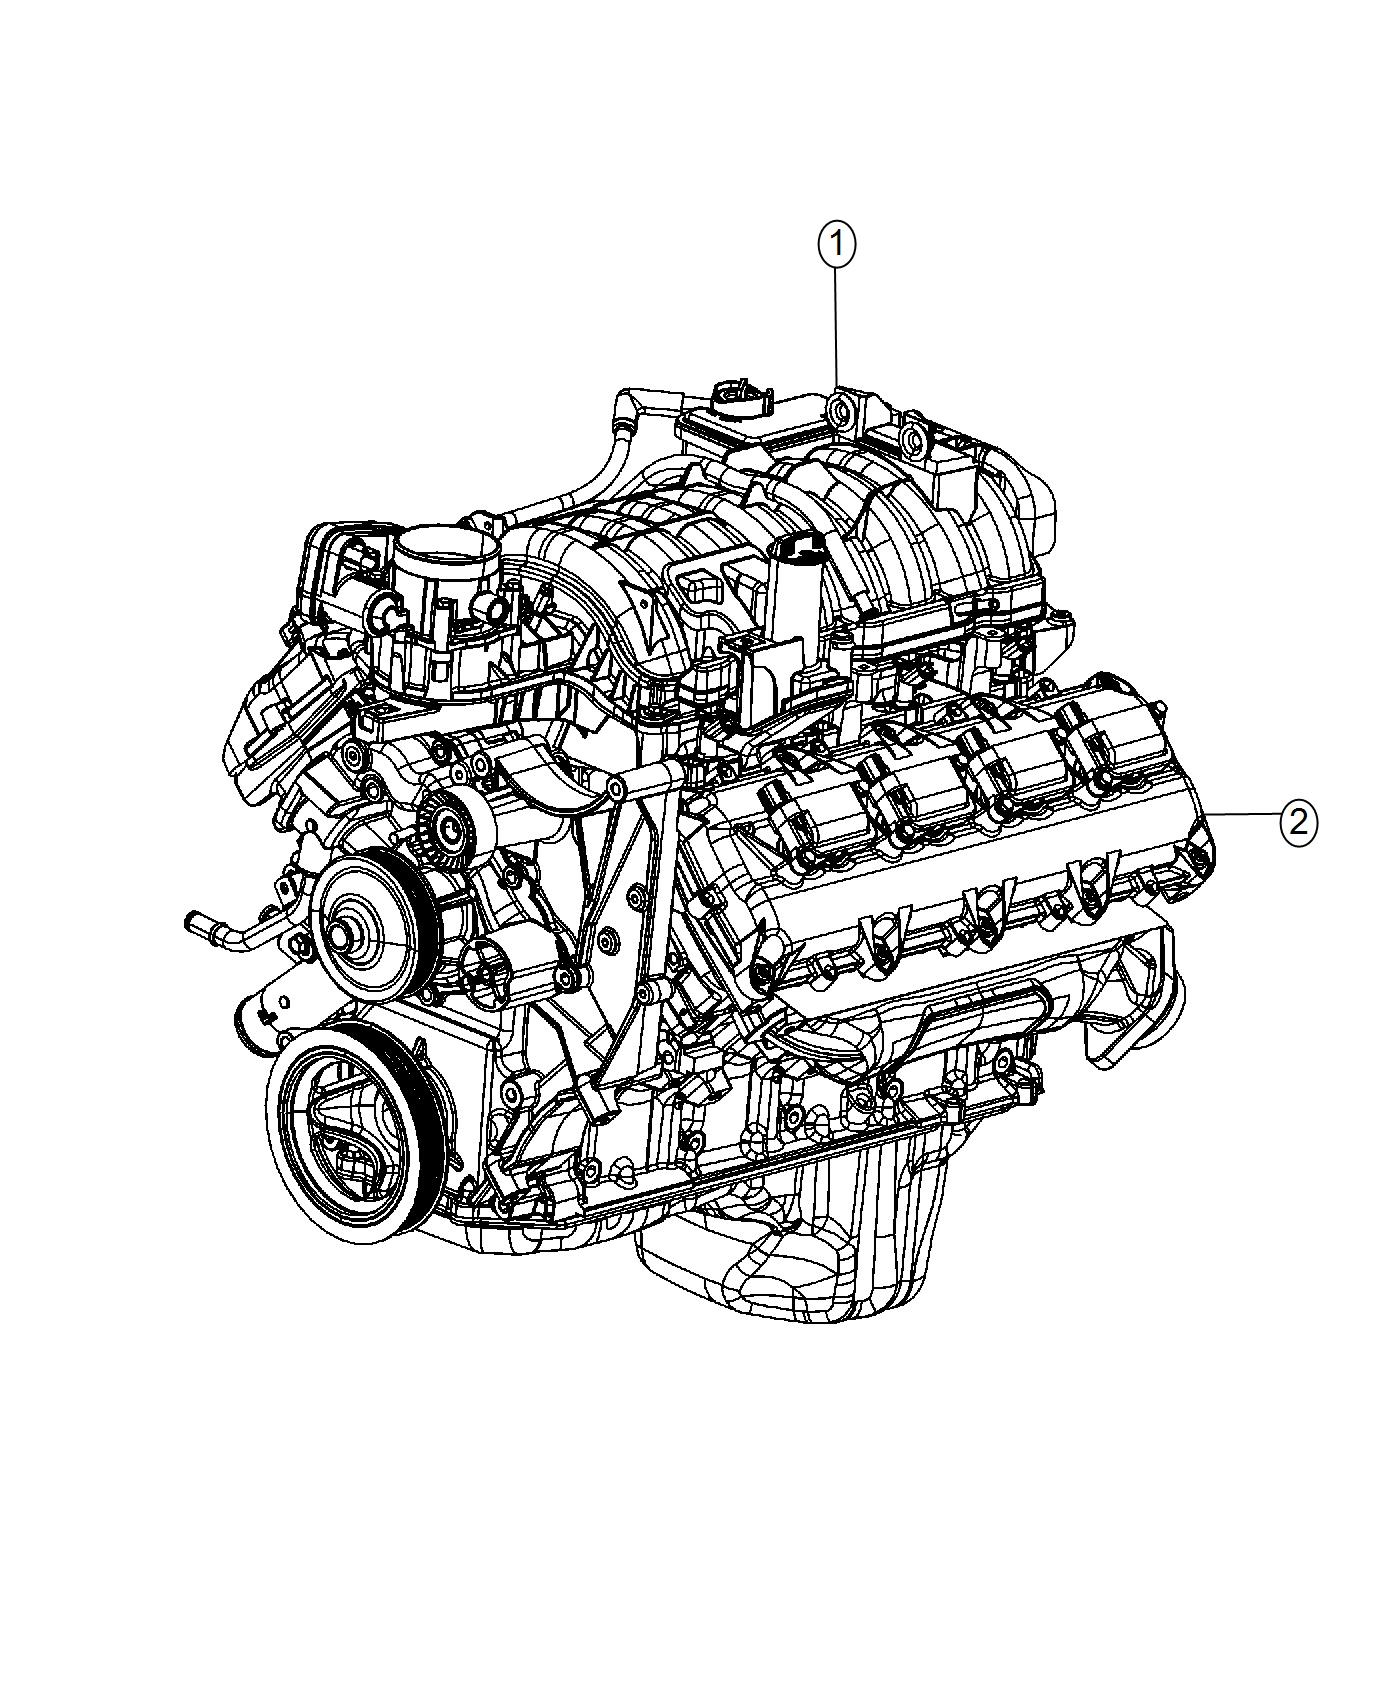 Ram 2500 Engine. Long block. [5-speed manual tr4050